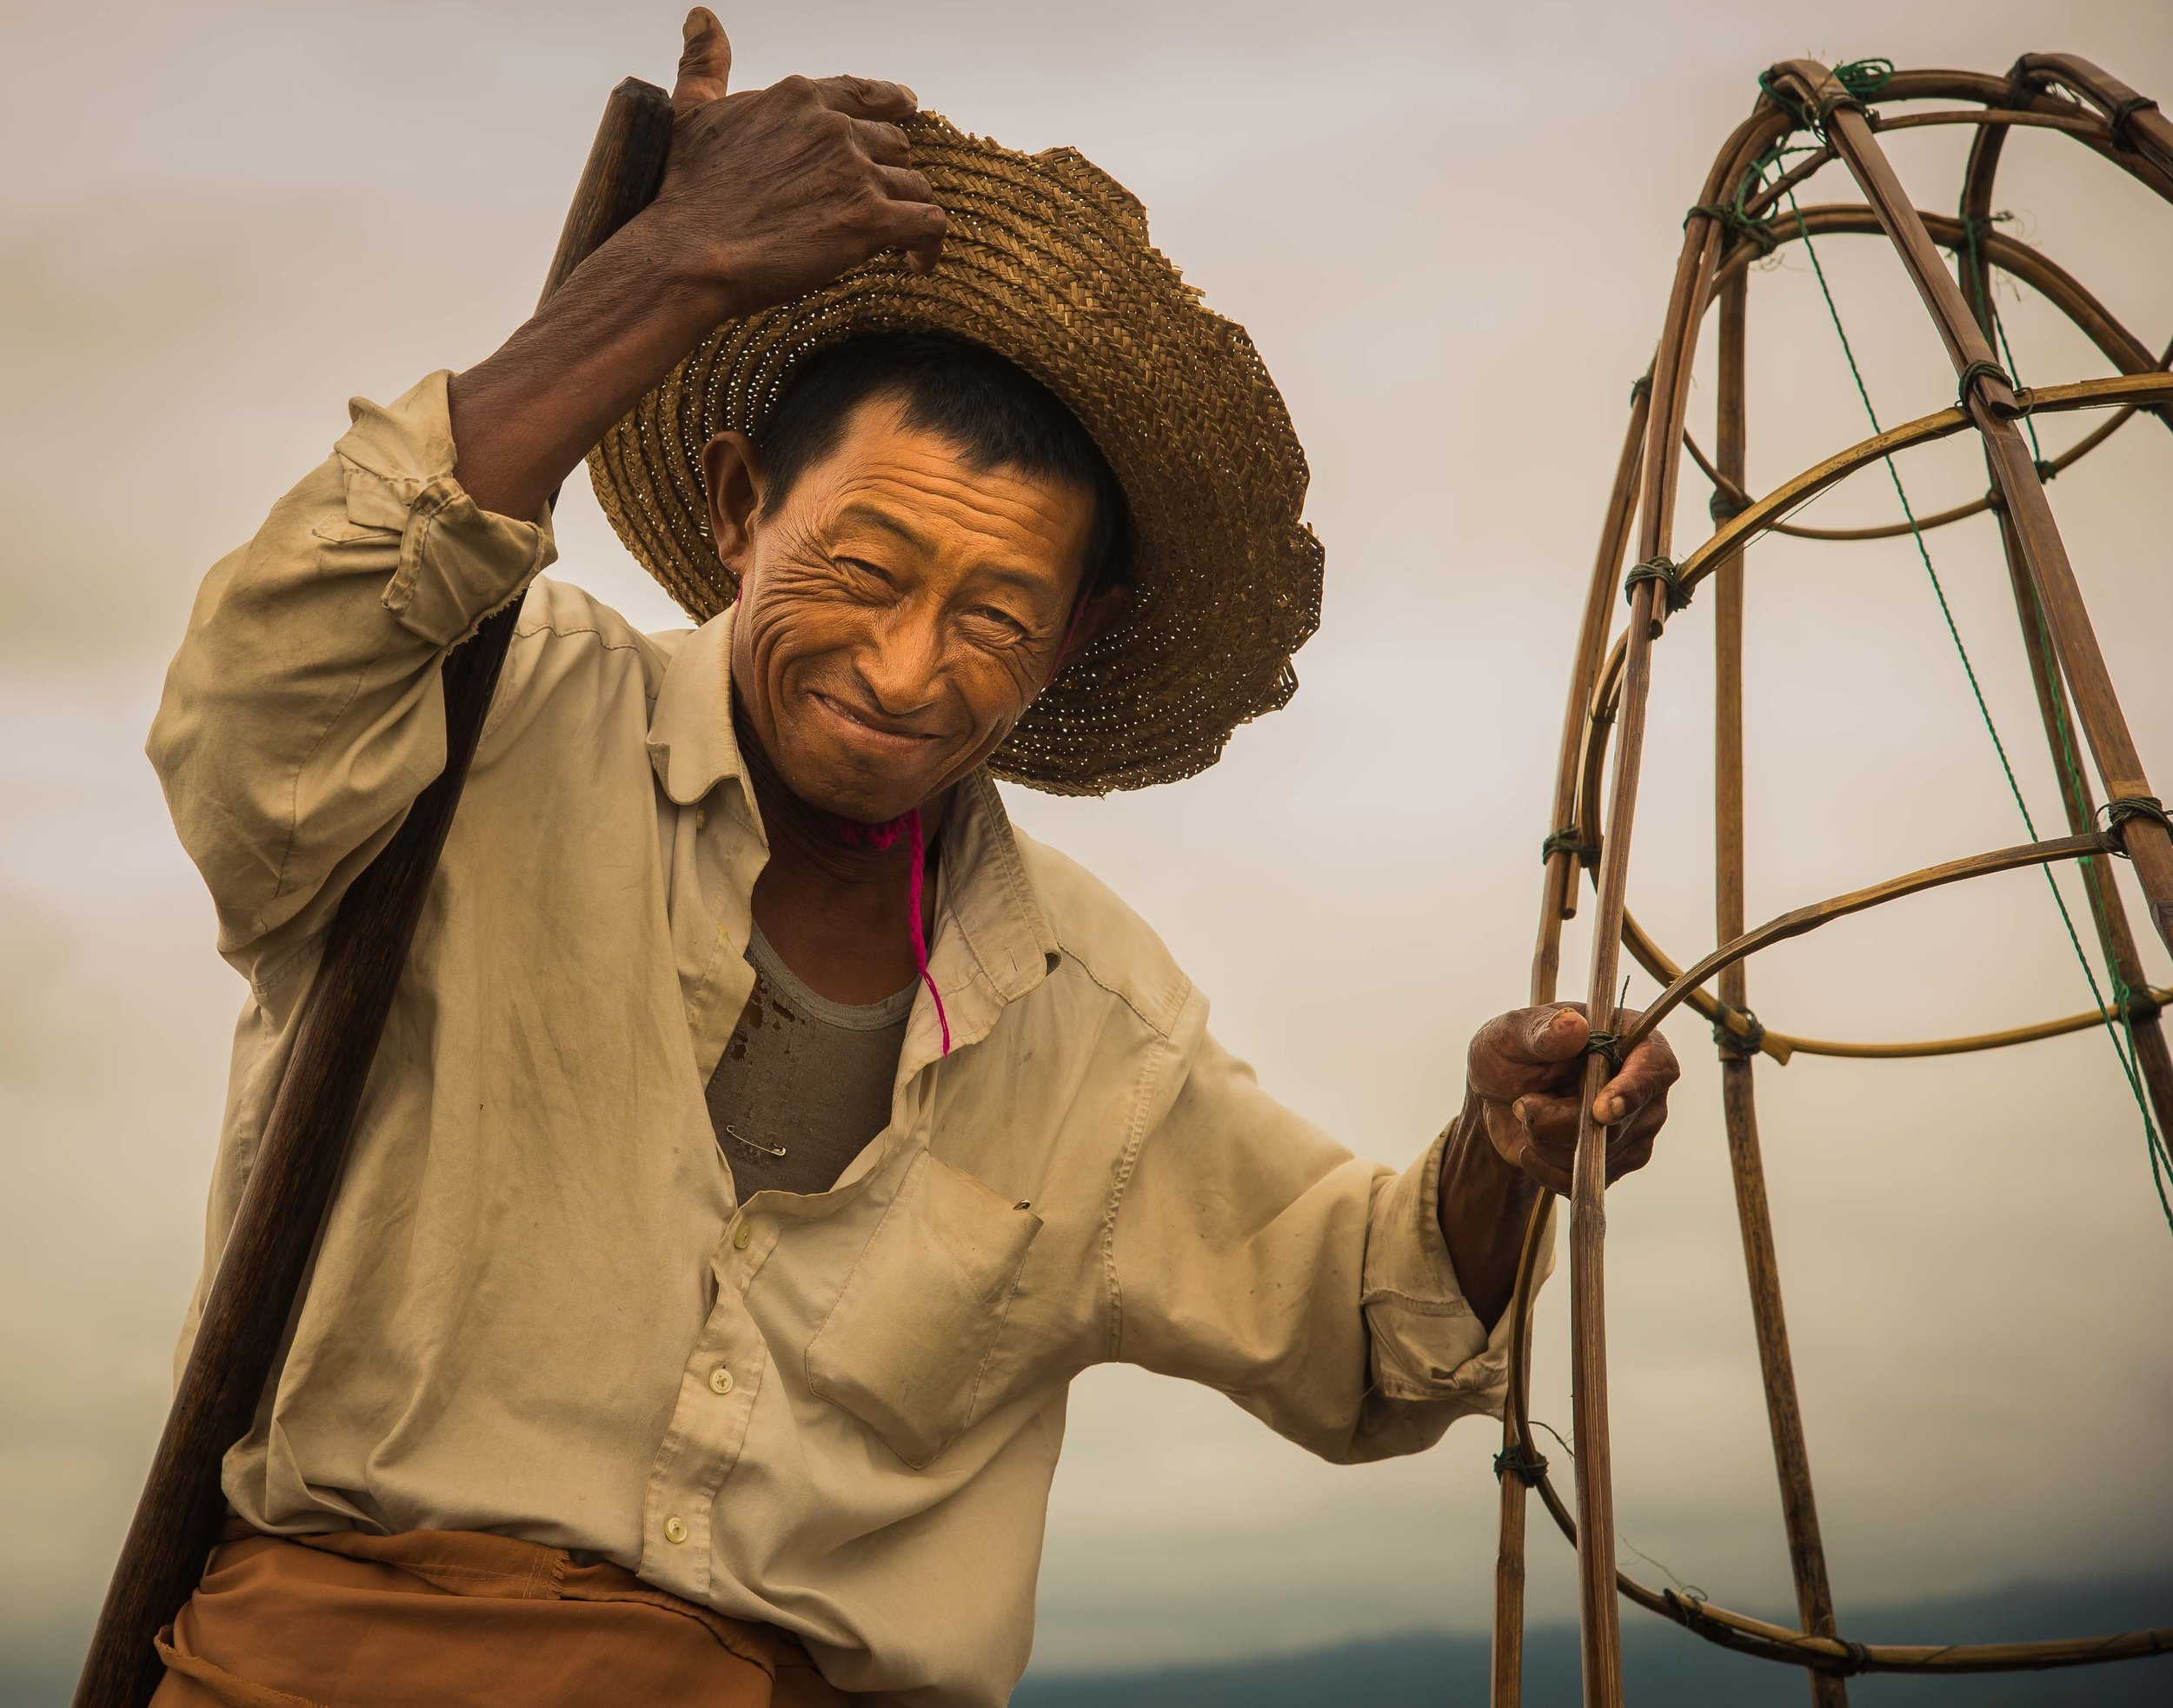 Fisherman, Inle Lake, Myanmar 2015